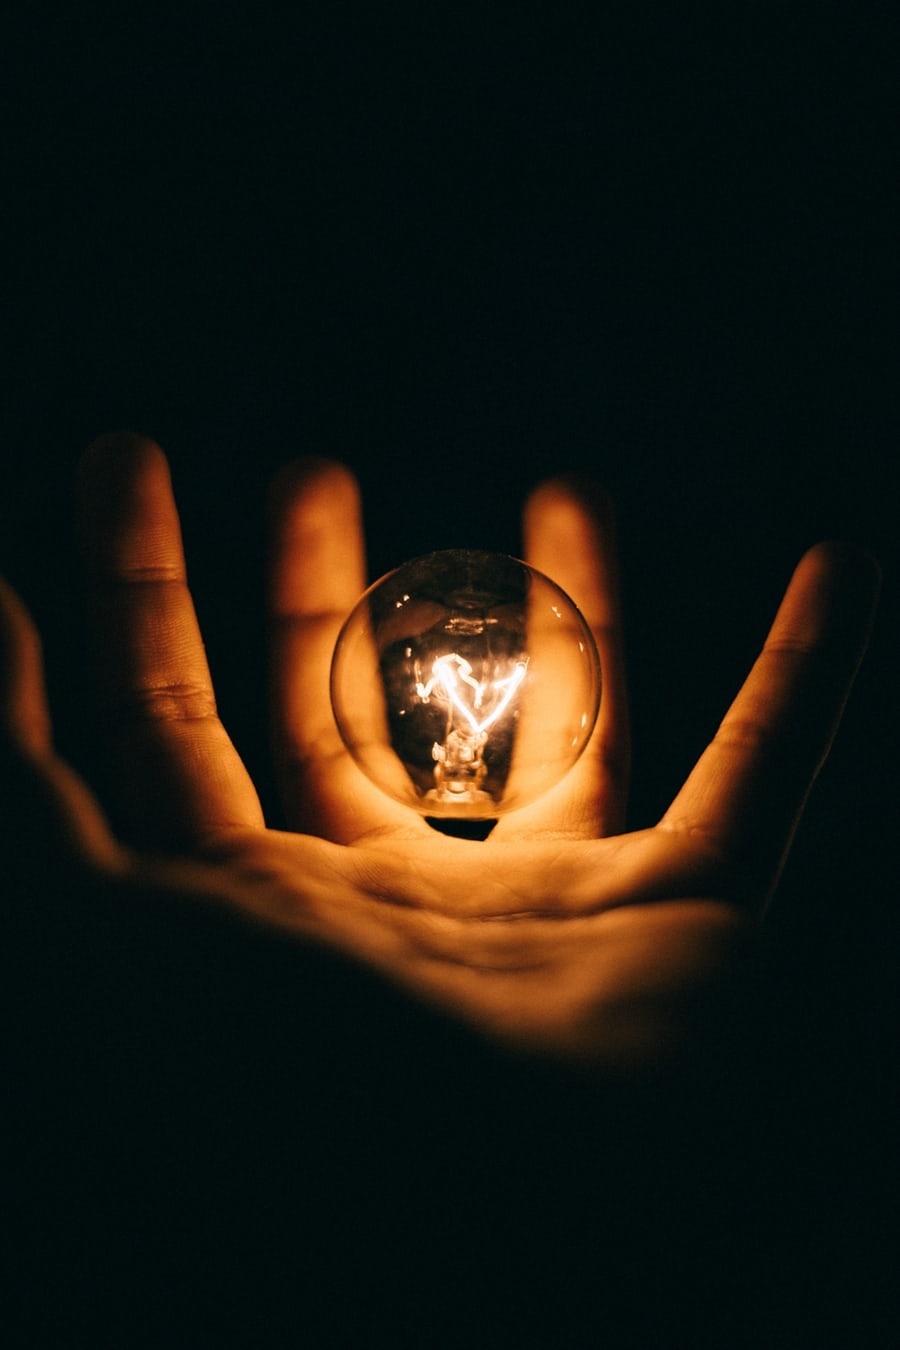 hand with palm facing upwards with a lit light globe in the middle